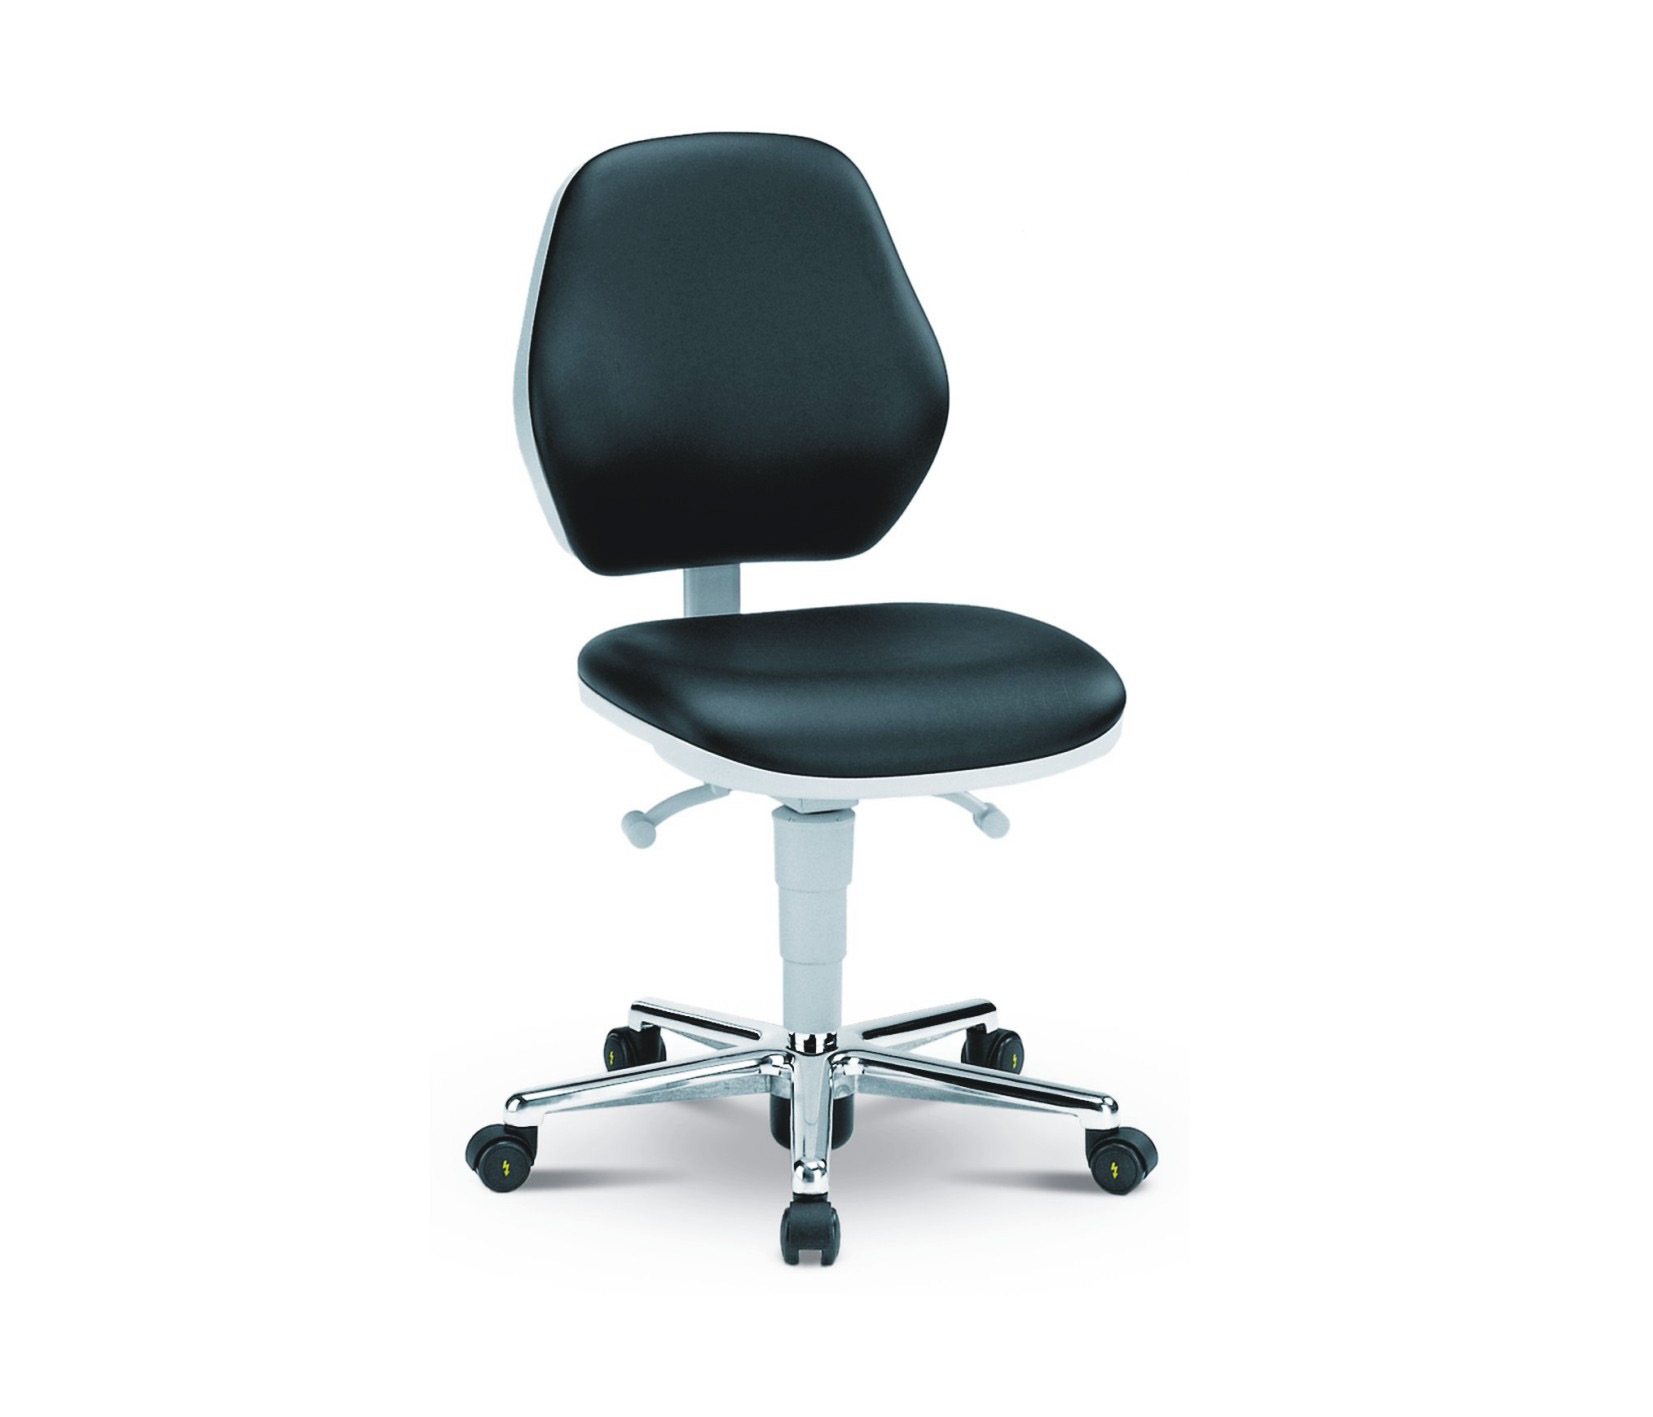 Cleanroom chair Basic with castors, low backrest, cleanroom class ISO 3